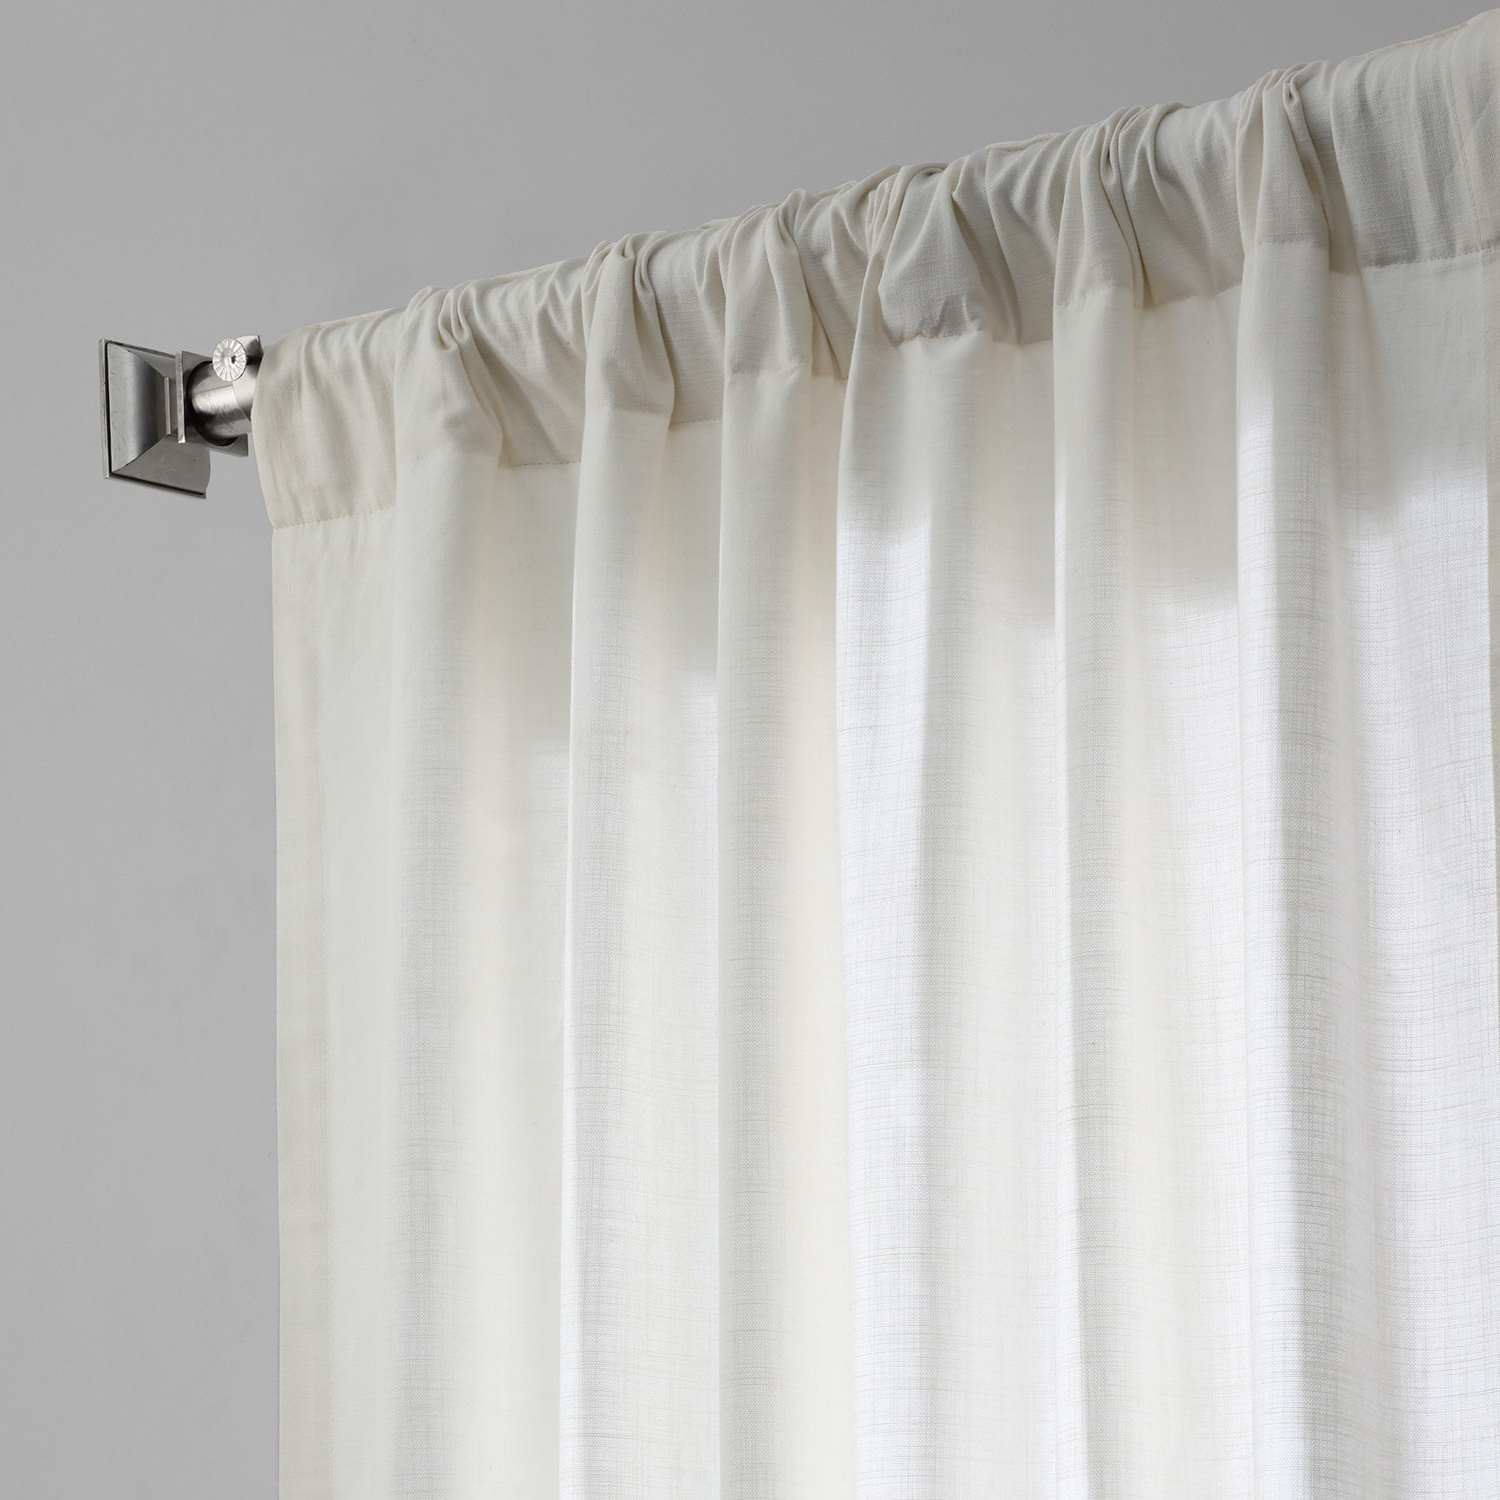 Pacific Pearl Country Cotton Linen Weave Curtain Intended For Popular Solid Country Cotton Linen Weave Curtain Panels (View 19 of 20)